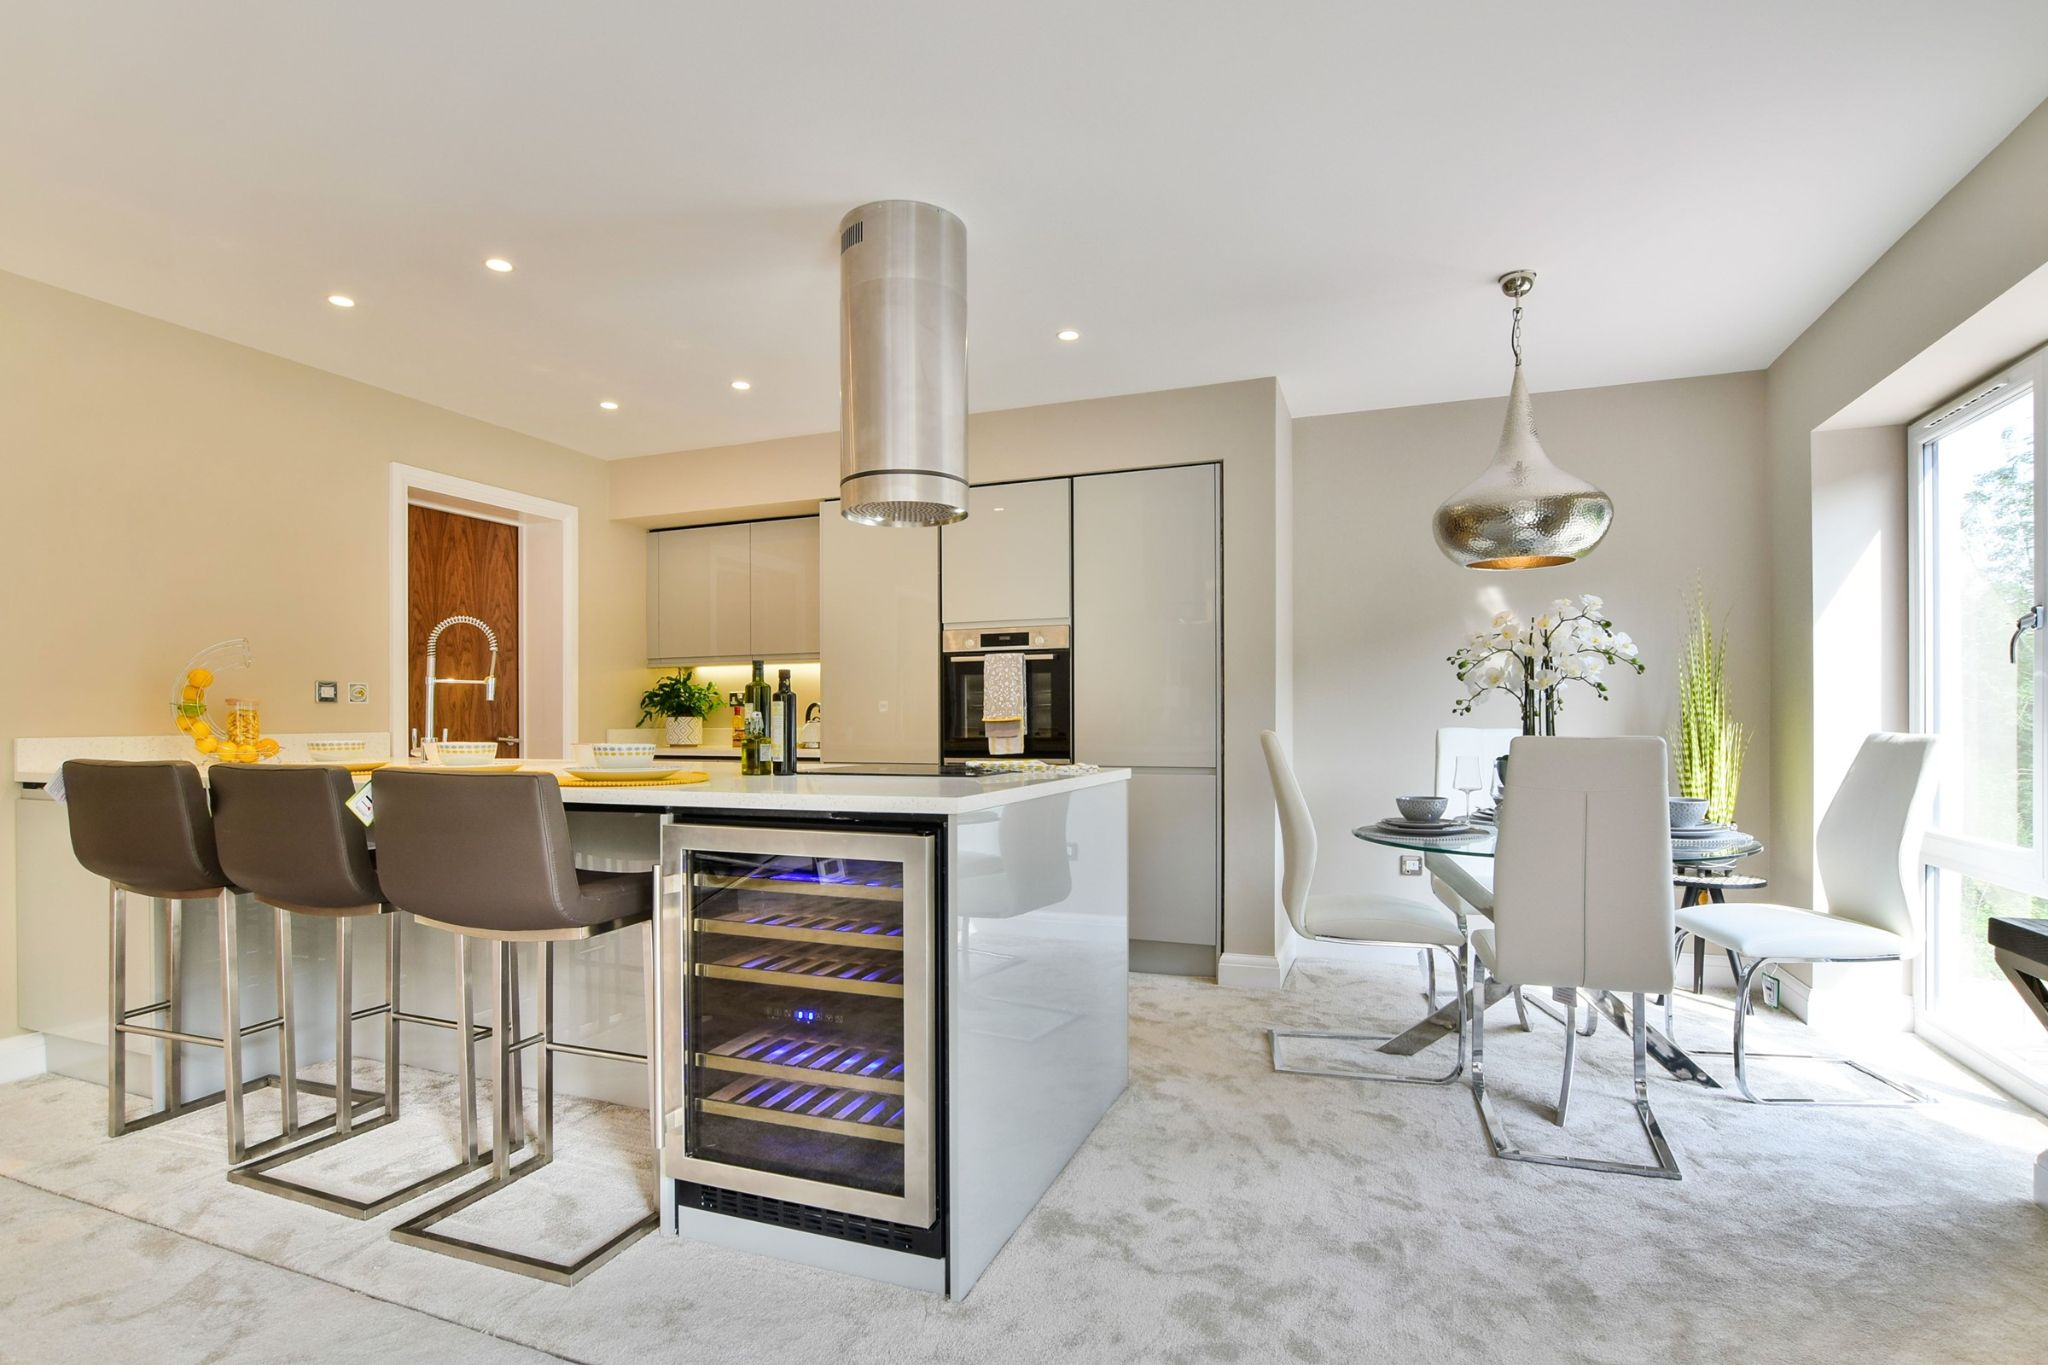 2 Bedroom Apartment Flat/apartment For Sale - Dining Kitchen